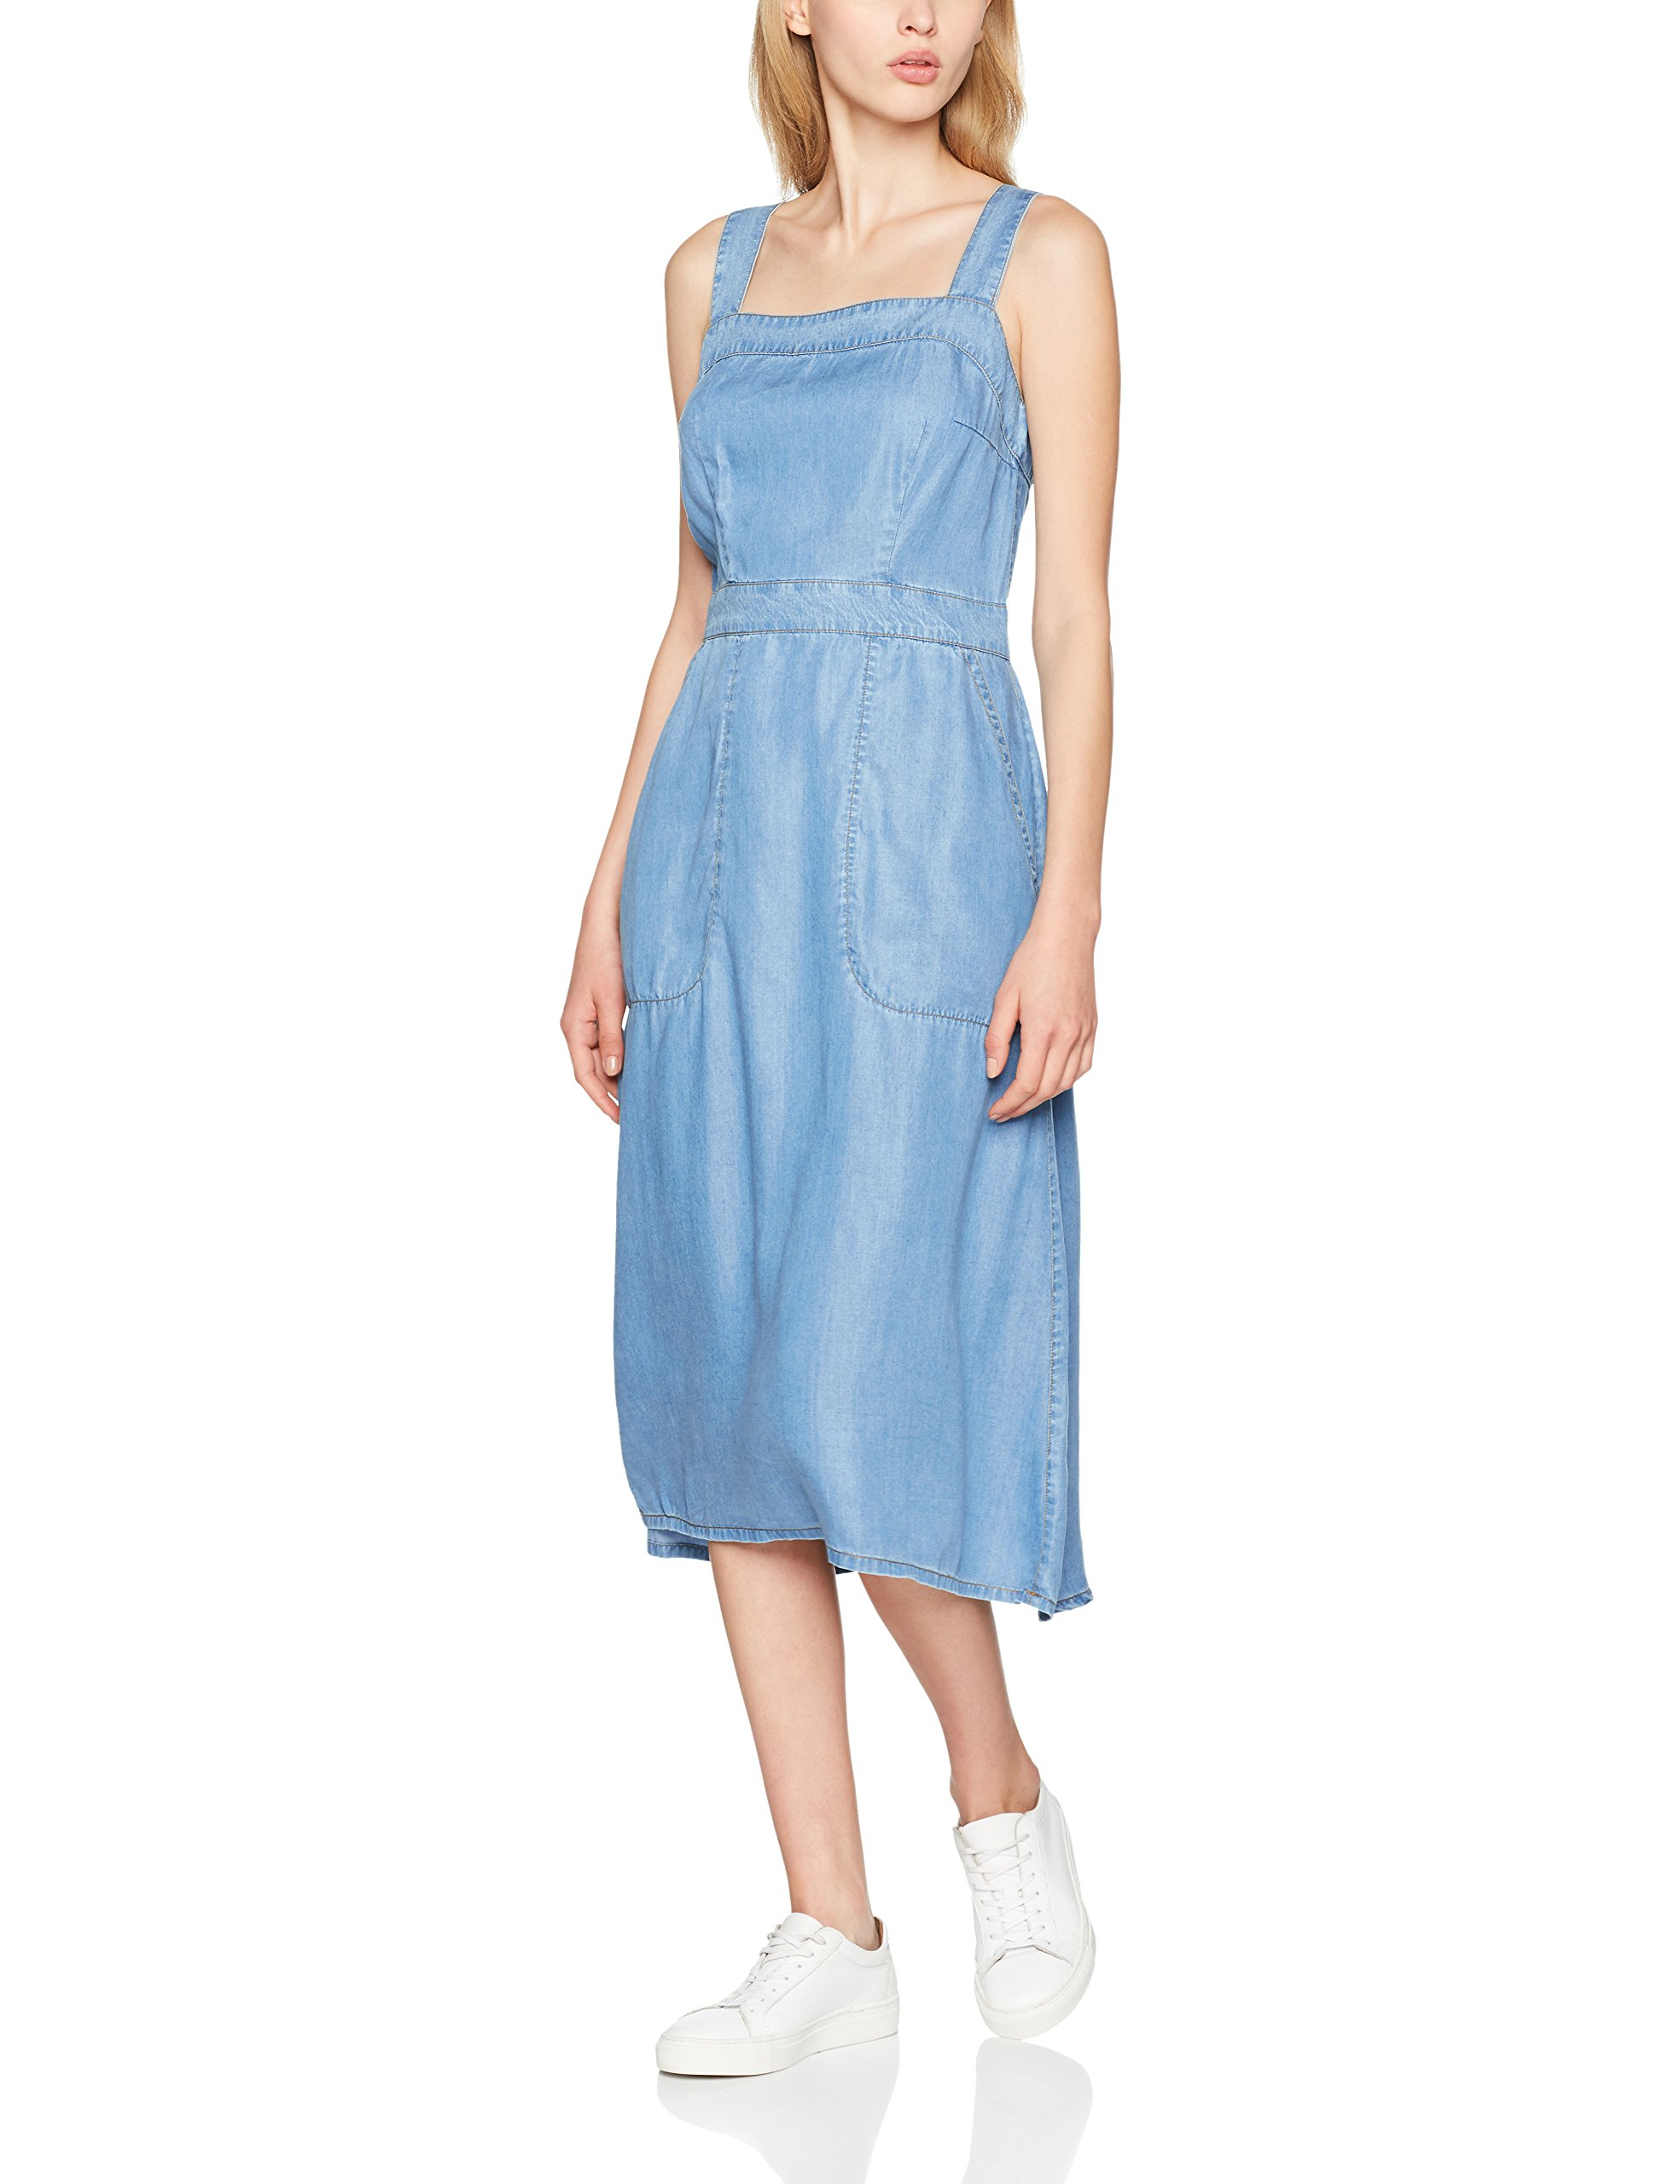 Fabricant Great Wendy Pinafore Wash40taille mFemme Plains Washed Dress RobeBleuantique yvOmN8n0w